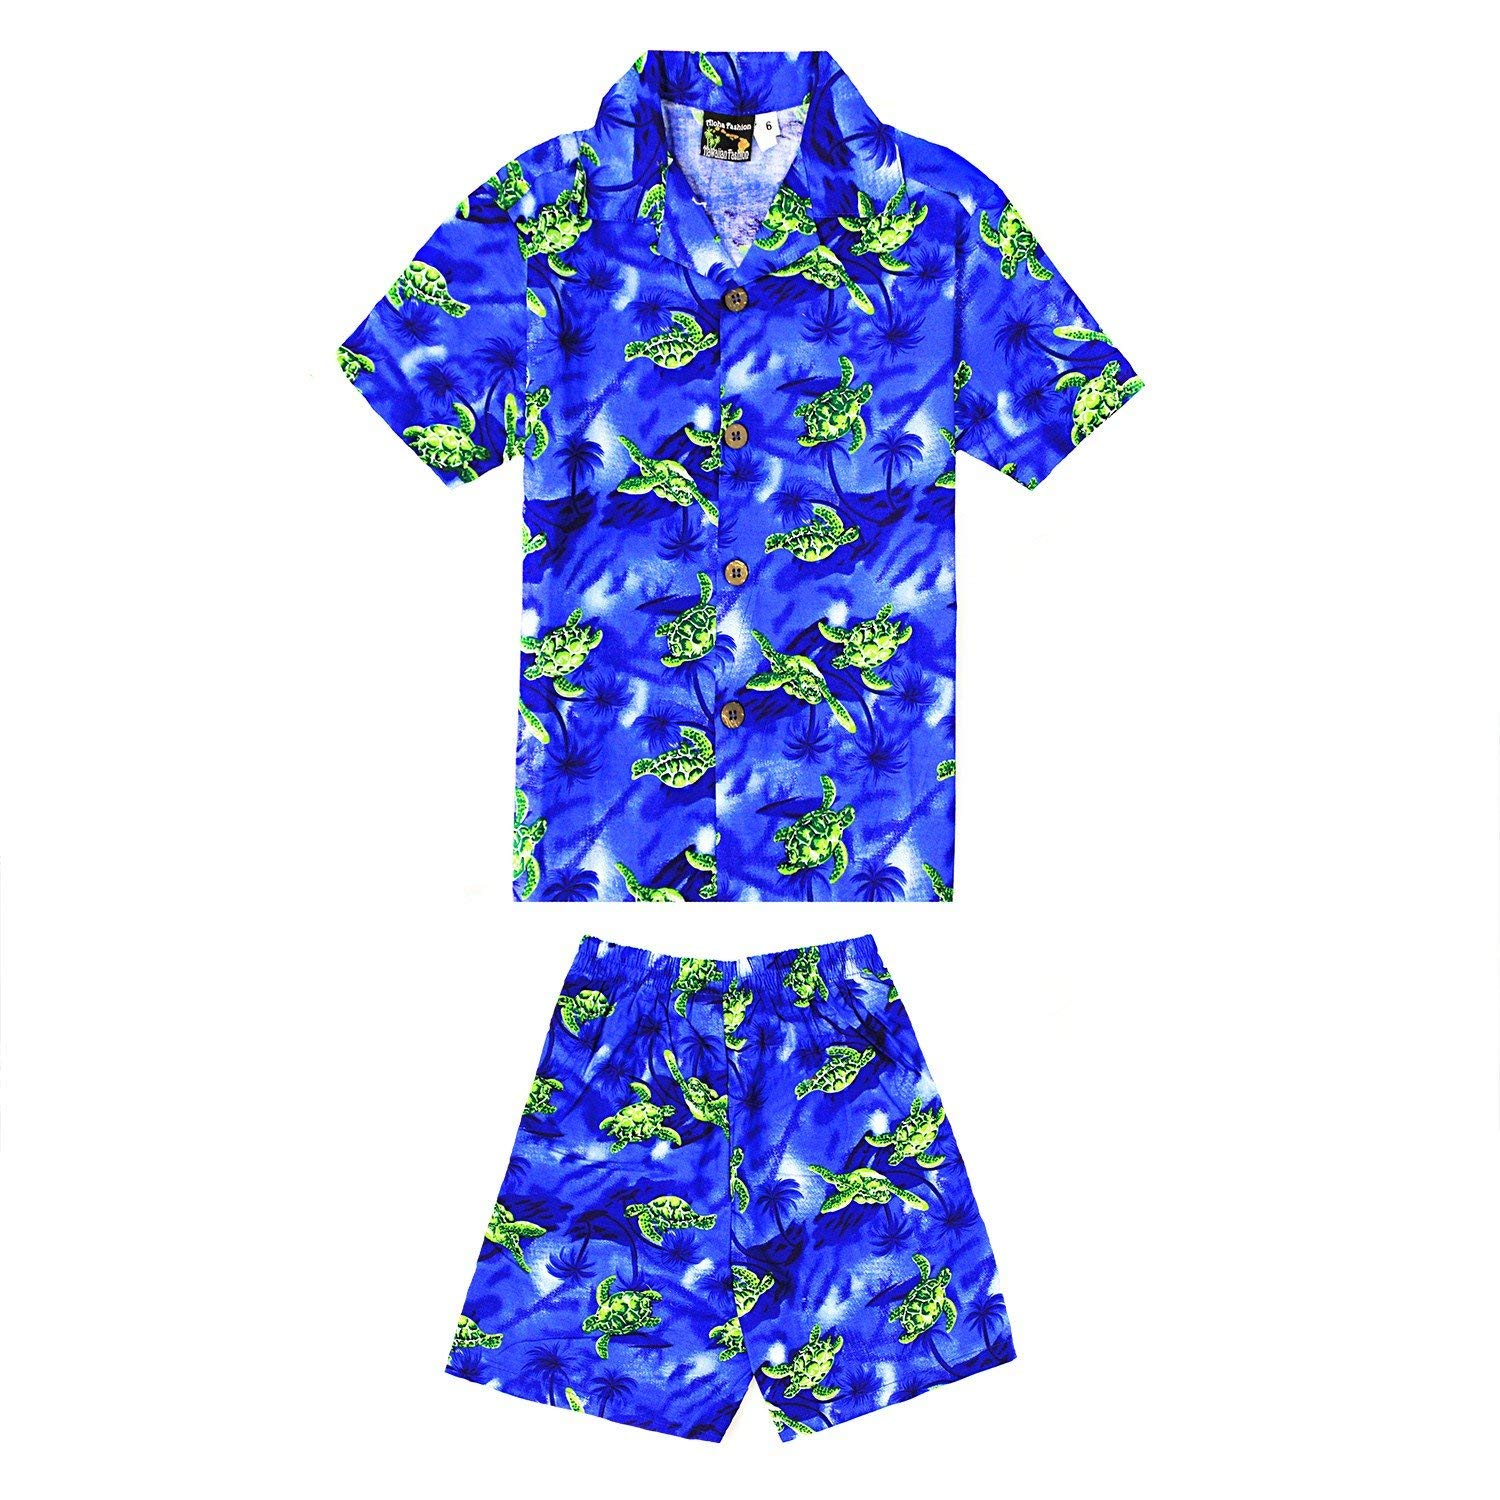 2bec6a7b Get Quotations · Boy Hawaiian Aloha Luau Shirt and Shorts 2 Piece Cabana Set  In Blue With Green Turtles